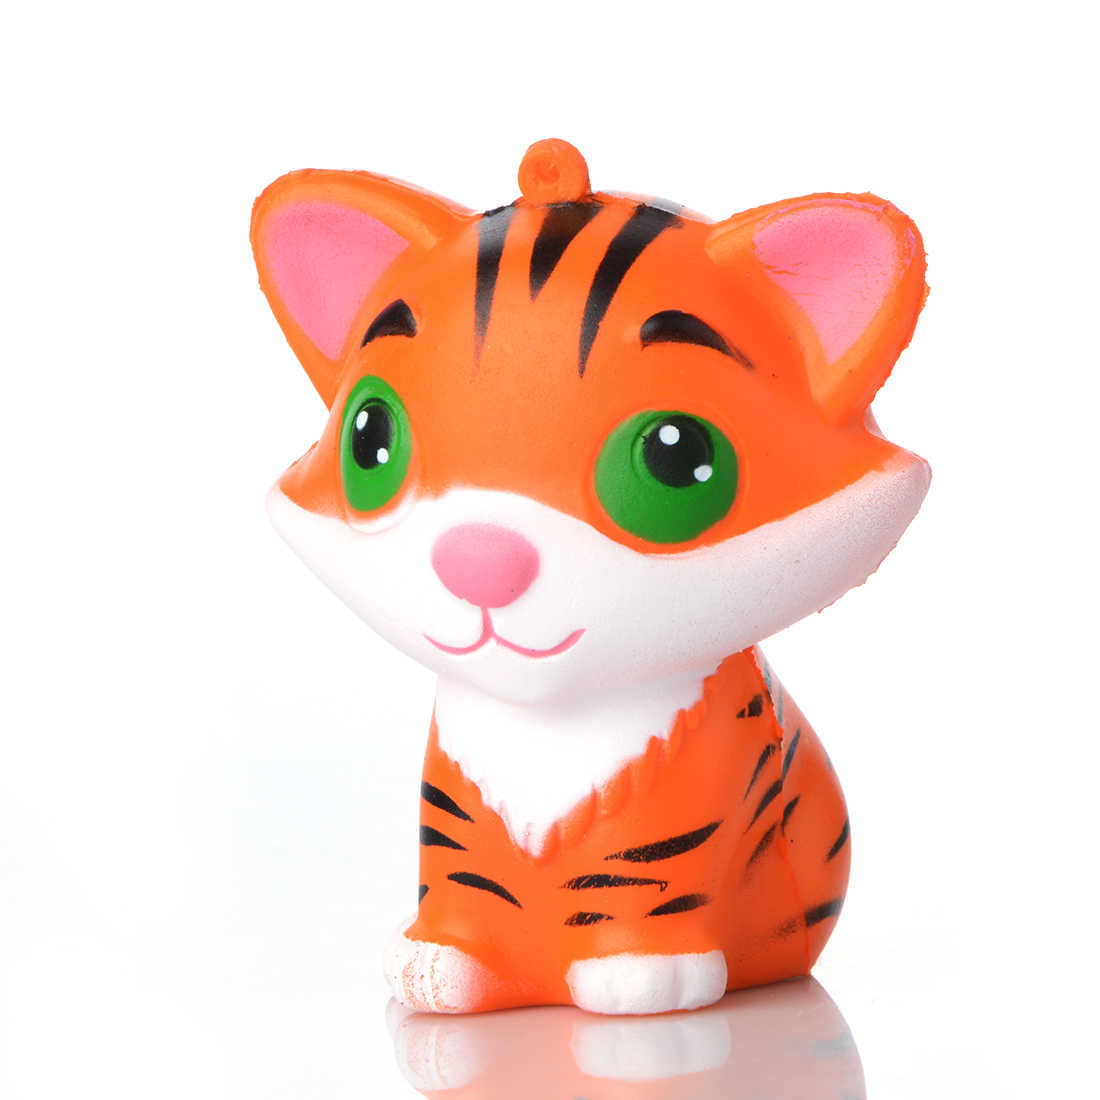 9*7CM Cute Cartoon Tiger Gags Joke Squishy Toy Prop Slow Rising Relieves Stress Kid Children's Day Gift Squishi Party Props